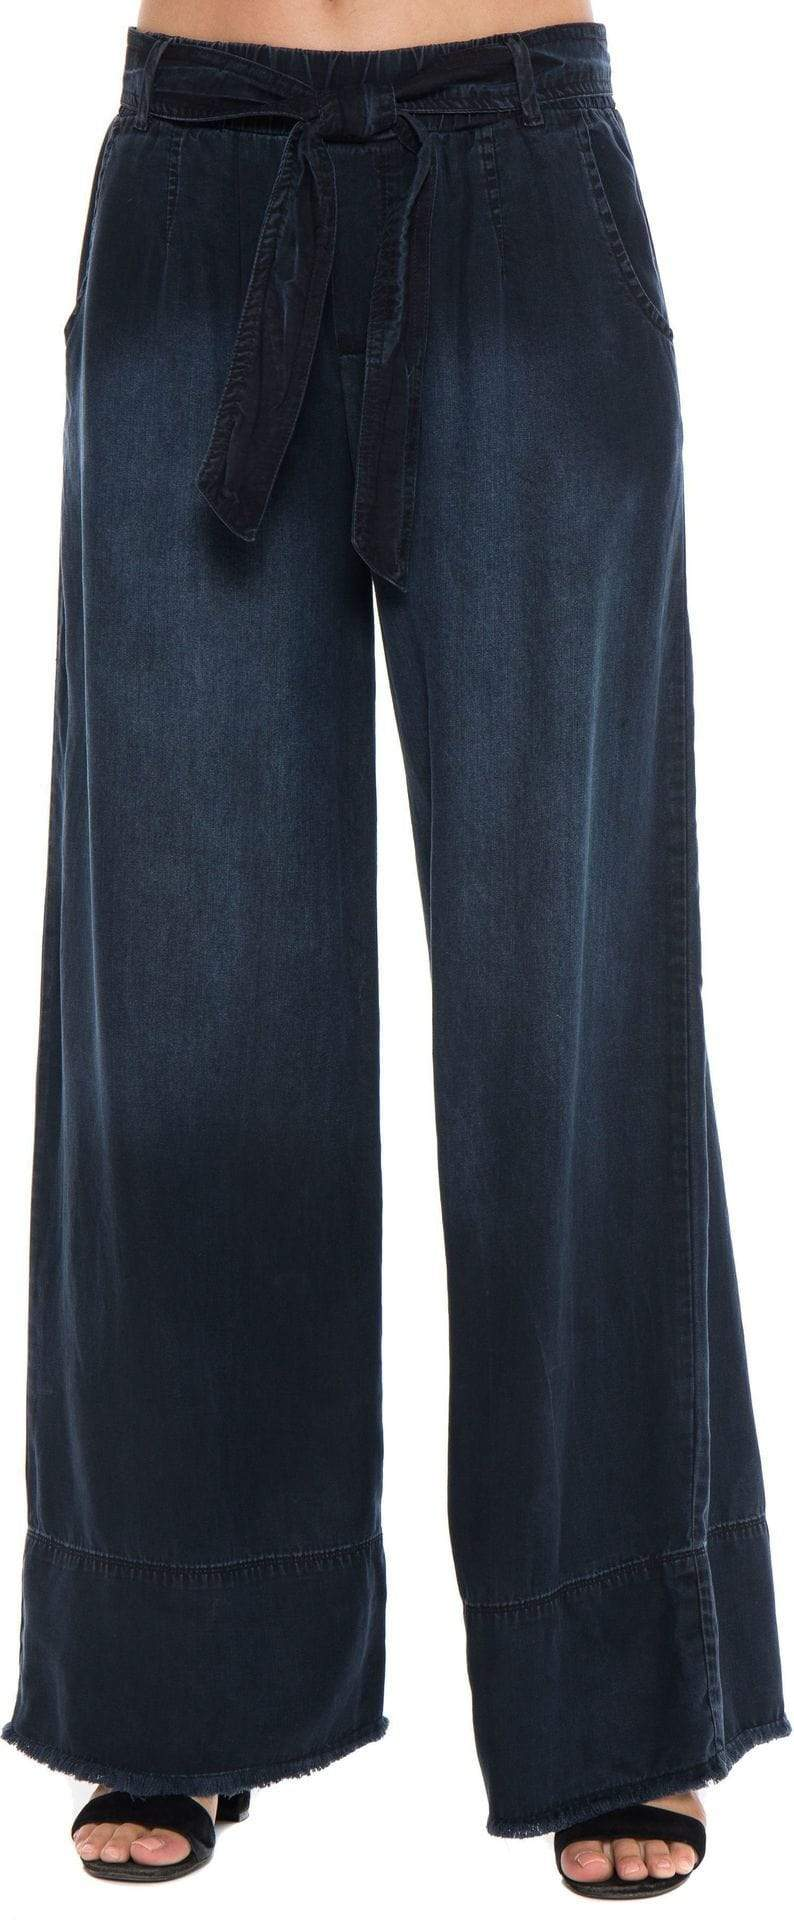 The Belted Wide Leg Pant Sky Wash